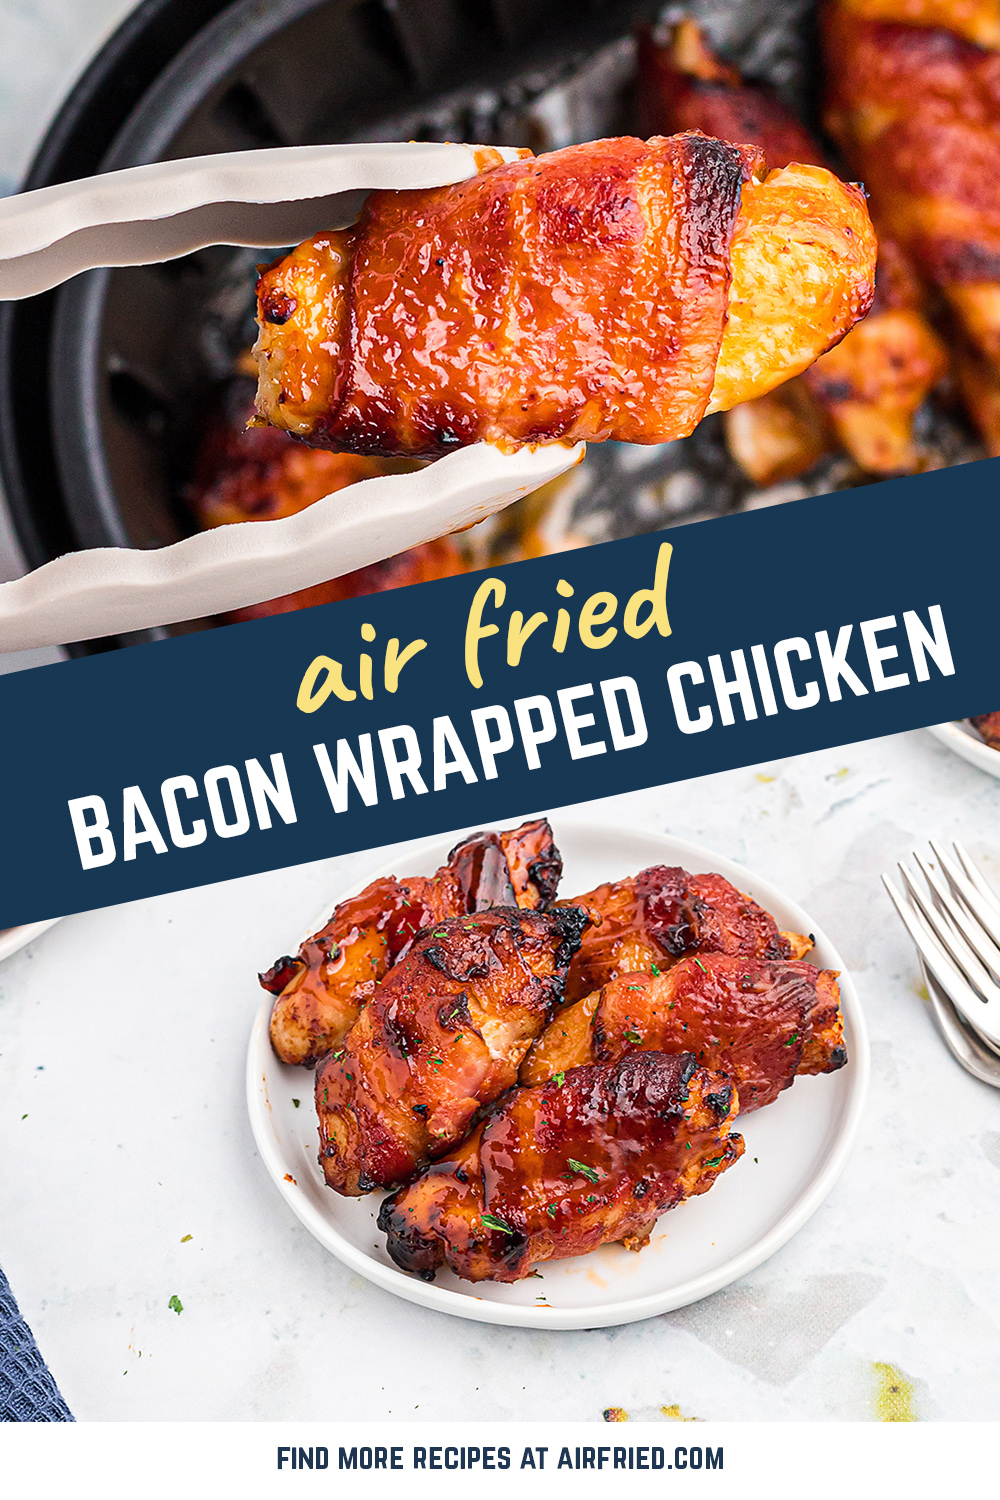 A favorite lunch and appetizer, these bacon wrapped chicken bites are FANTASTIC! #airfried #bacon #appetizers